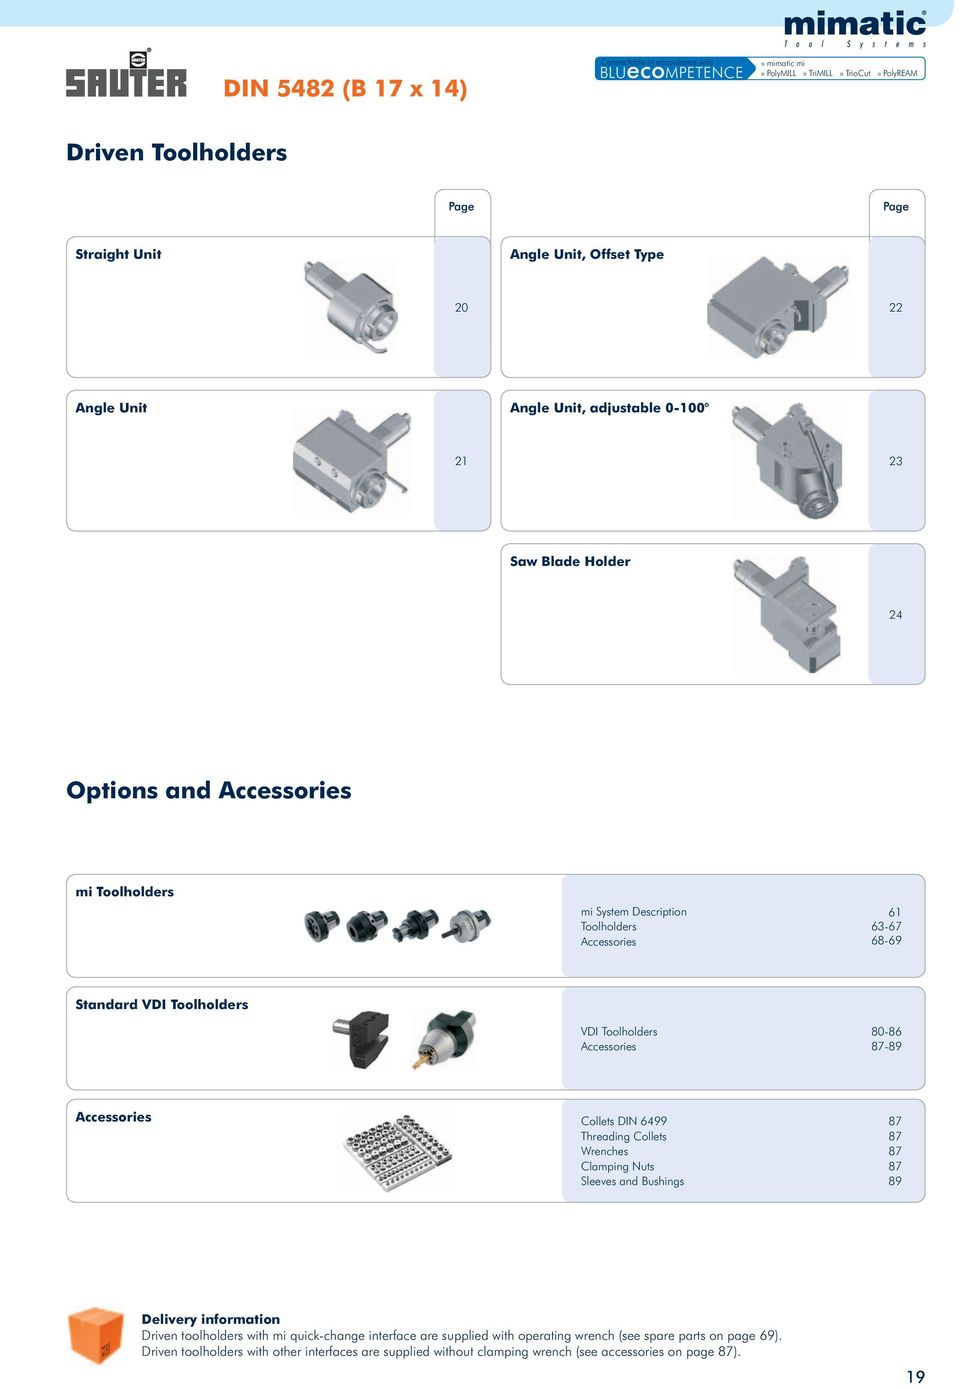 VDI Toolholders Accessories 80-86 87-89 Accessories Collets DIN 6499 Threading Collets Wrenches Clamping Nuts Sleeves and Bushings 87 87 87 87 89 Delivery information Driven toolholders with mi